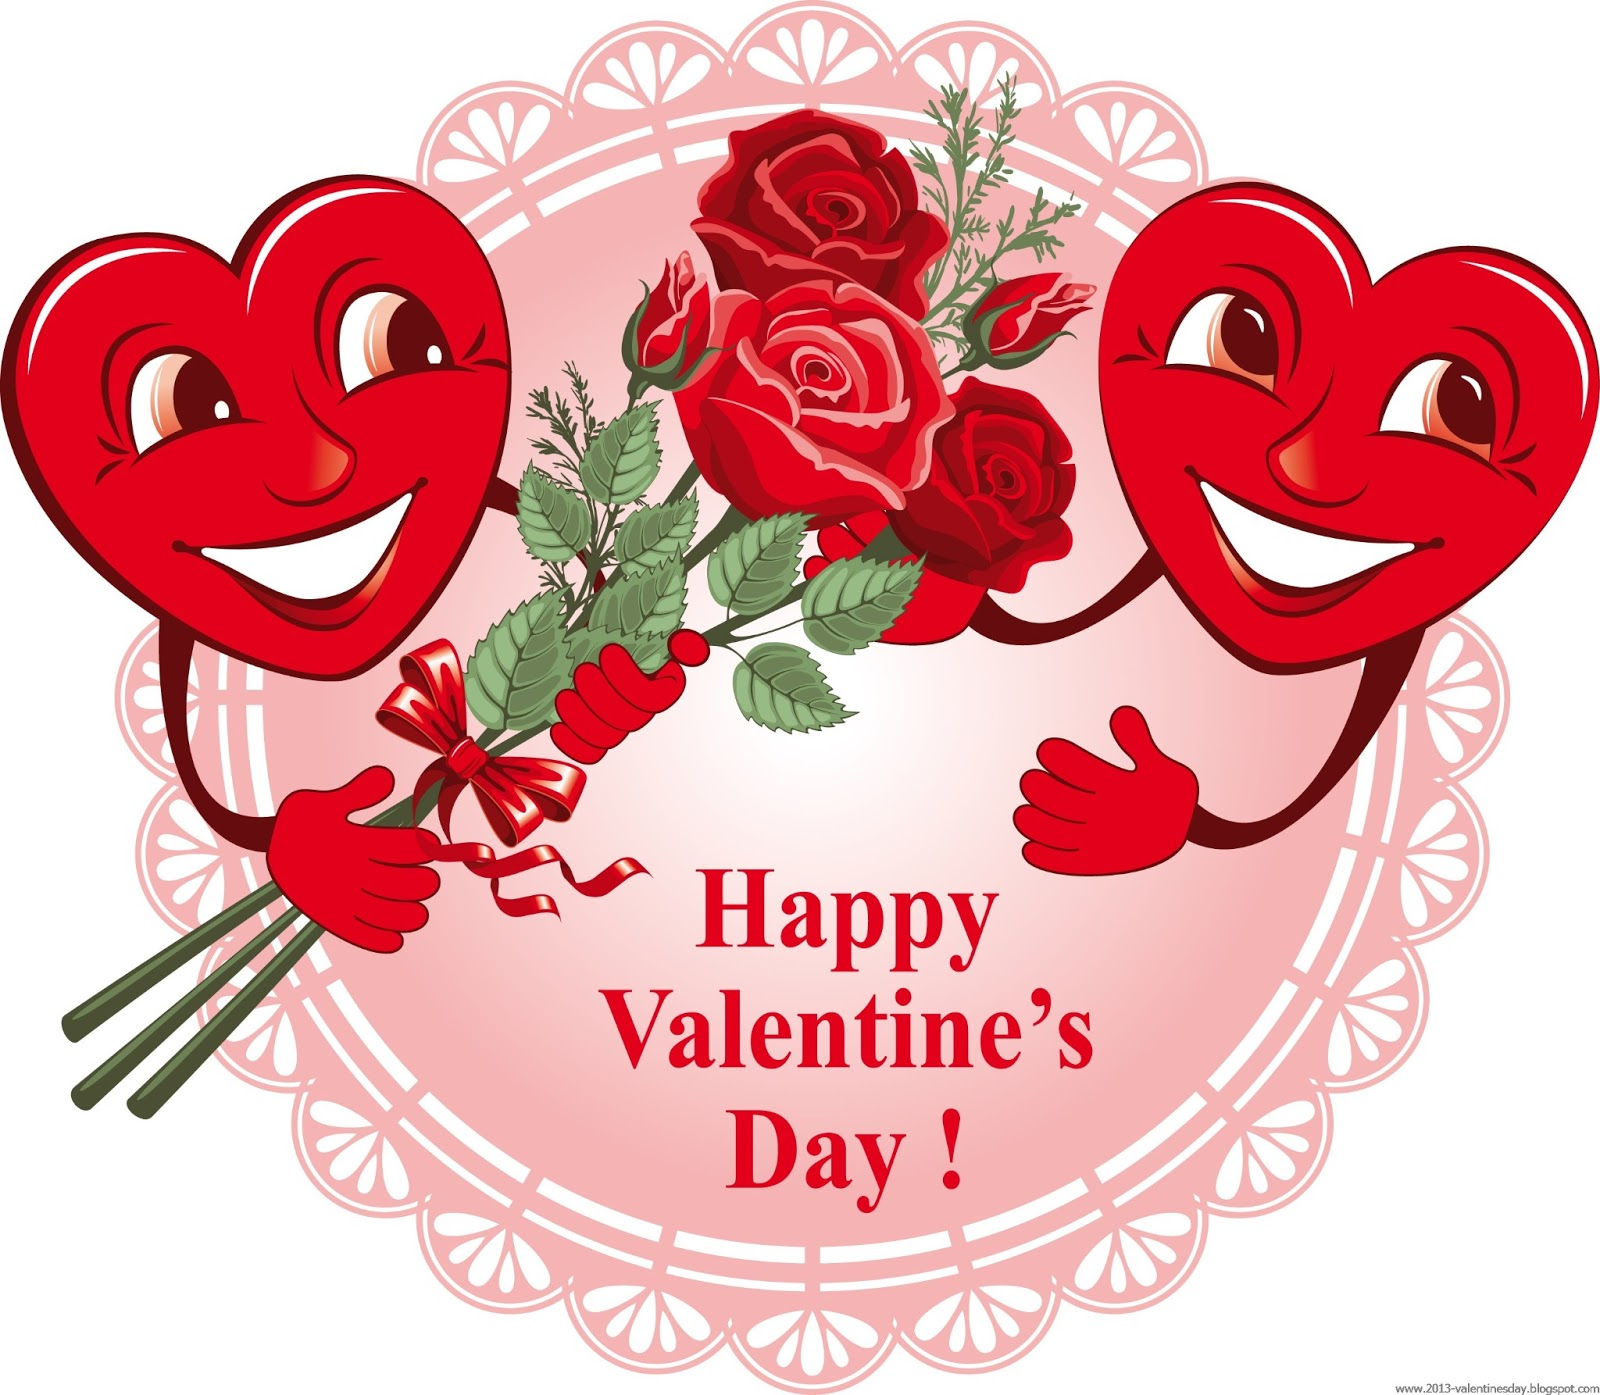 Valentines day Clip Art Collection 2014 | Valentine's day 2015